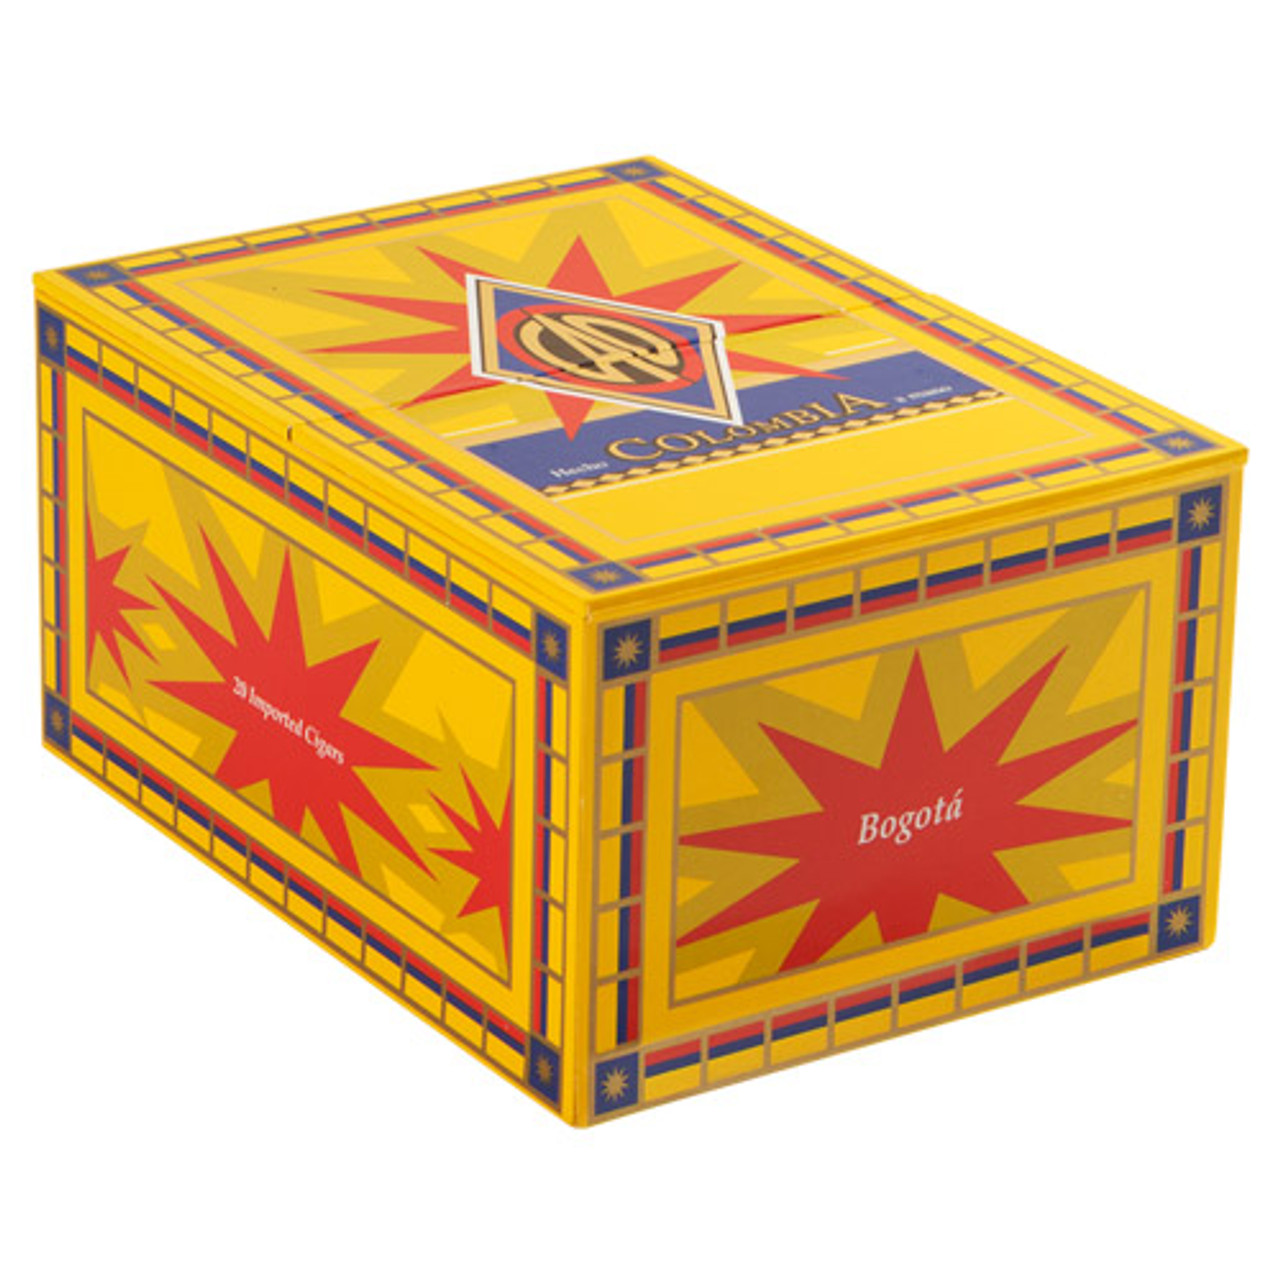 CAO Colombia Vallenato Cigars - 5 x 56 (Box of 20)